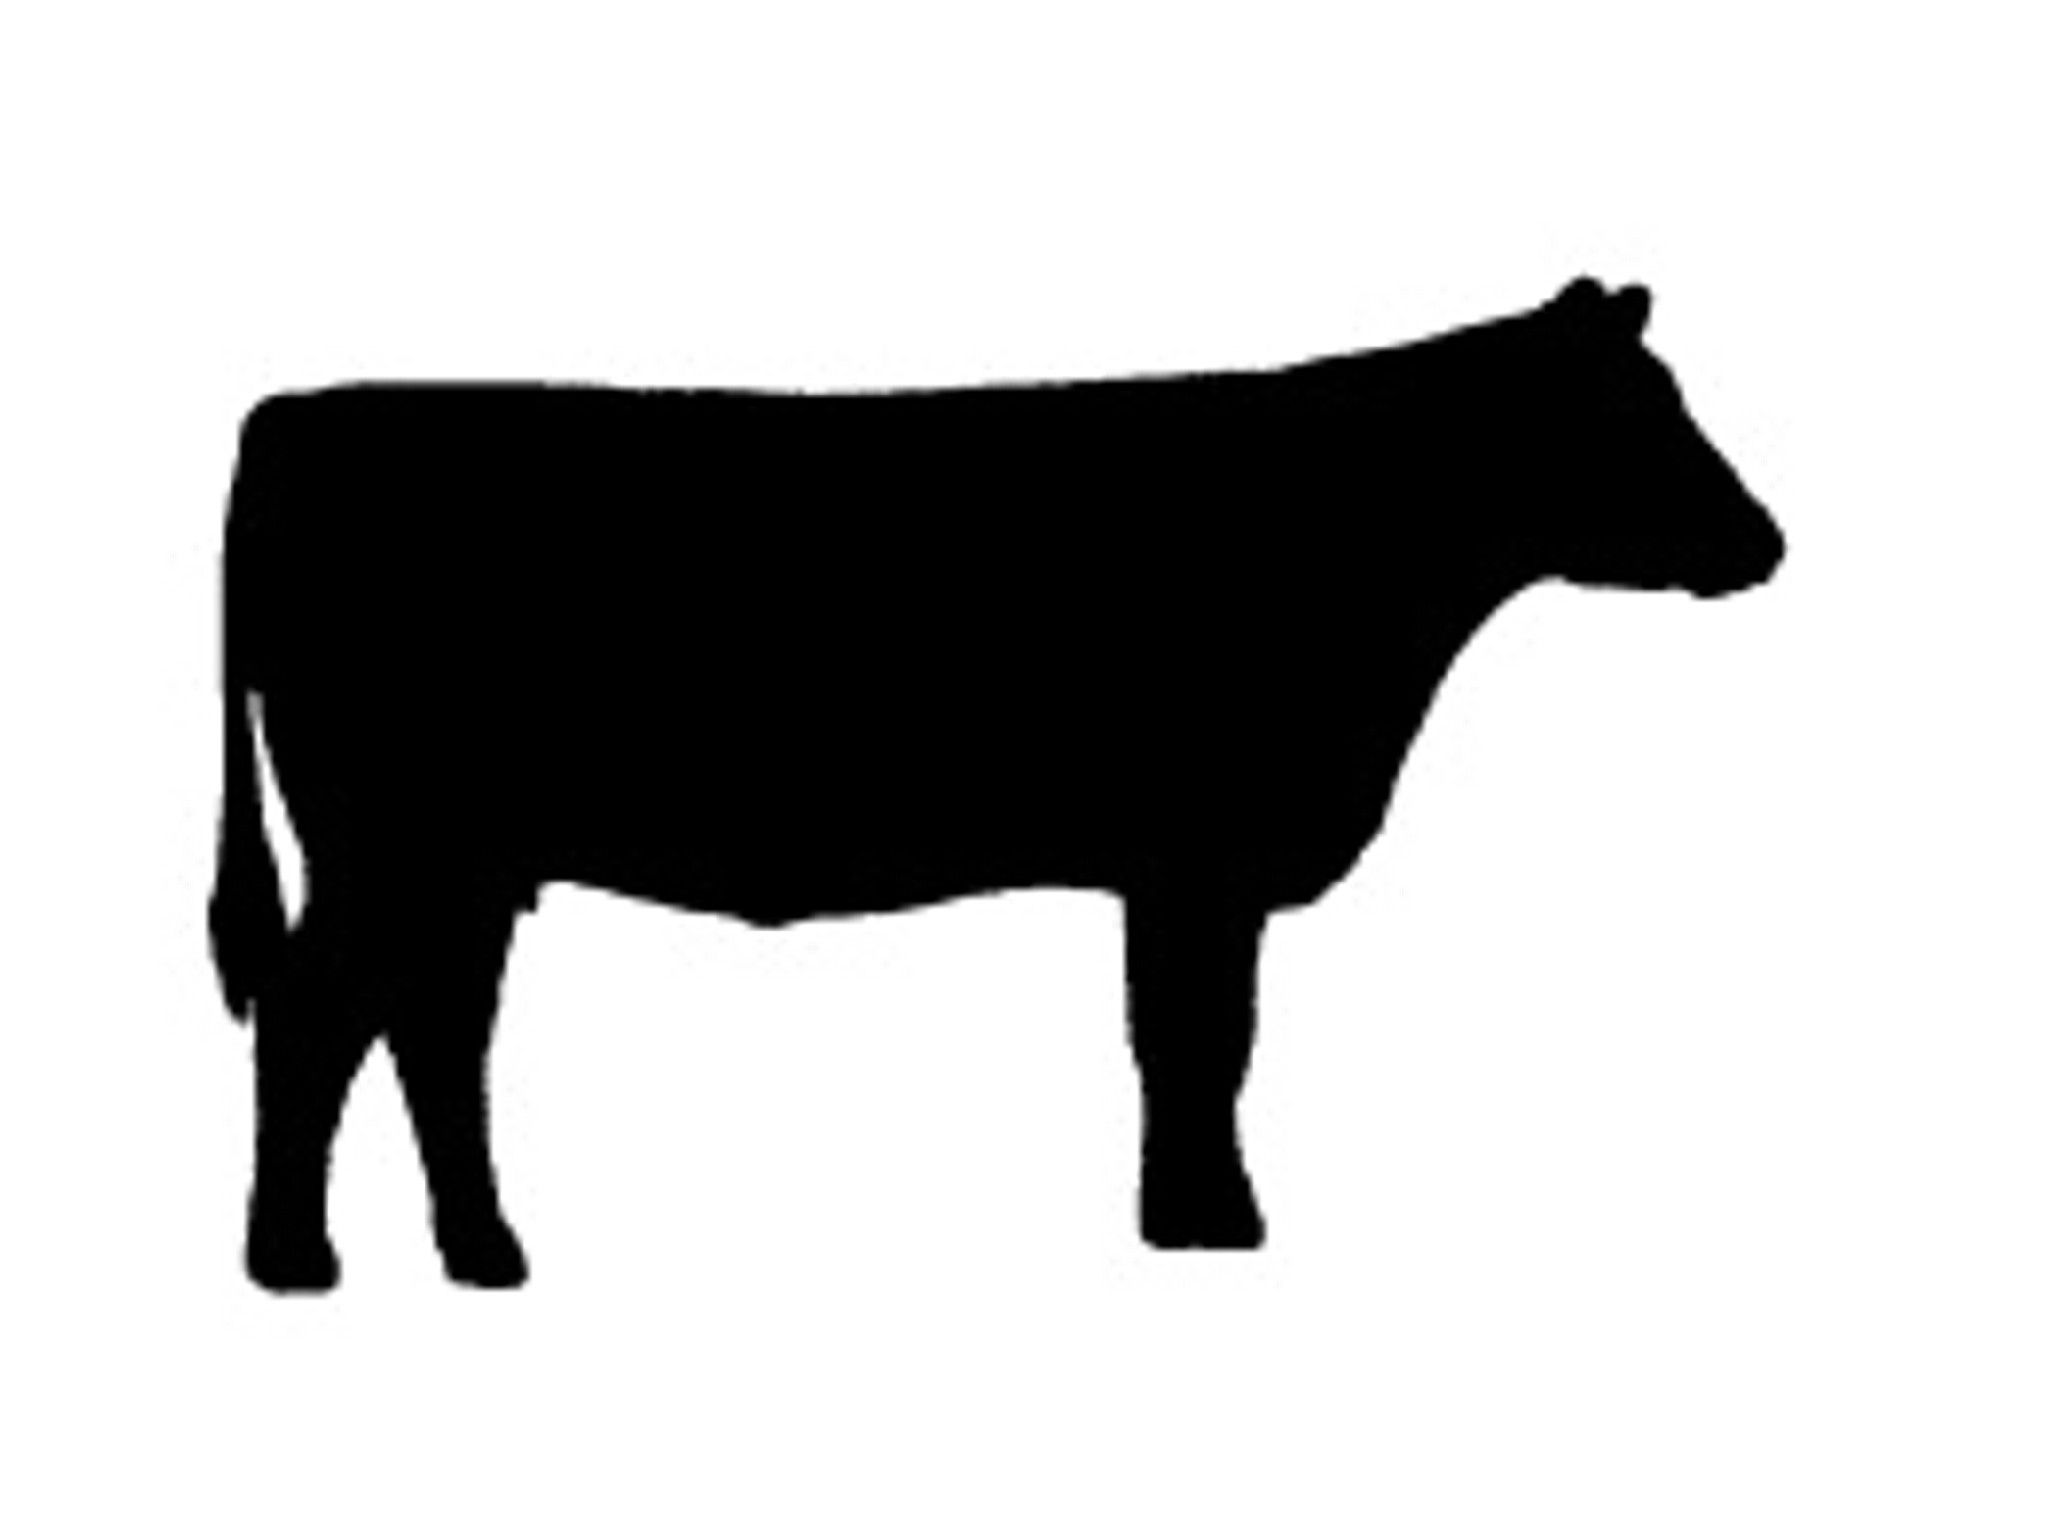 2048x1536 Angus Cow Cattle Decal Vinyl Sticker Car Van Laptop Silhouette